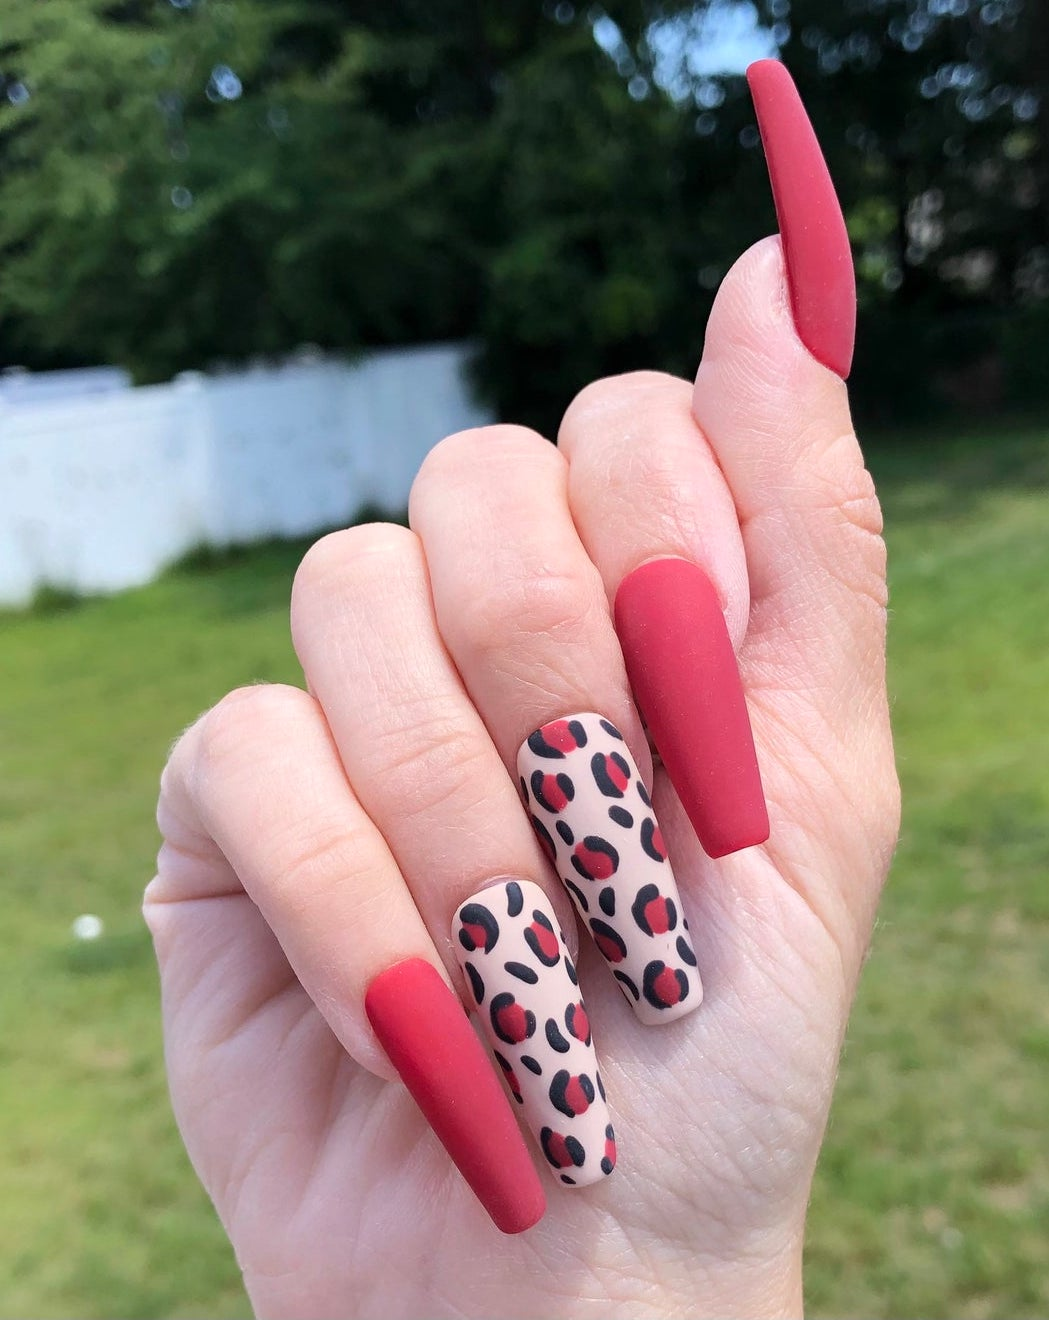 Soft red matte nails with leopard print nail art